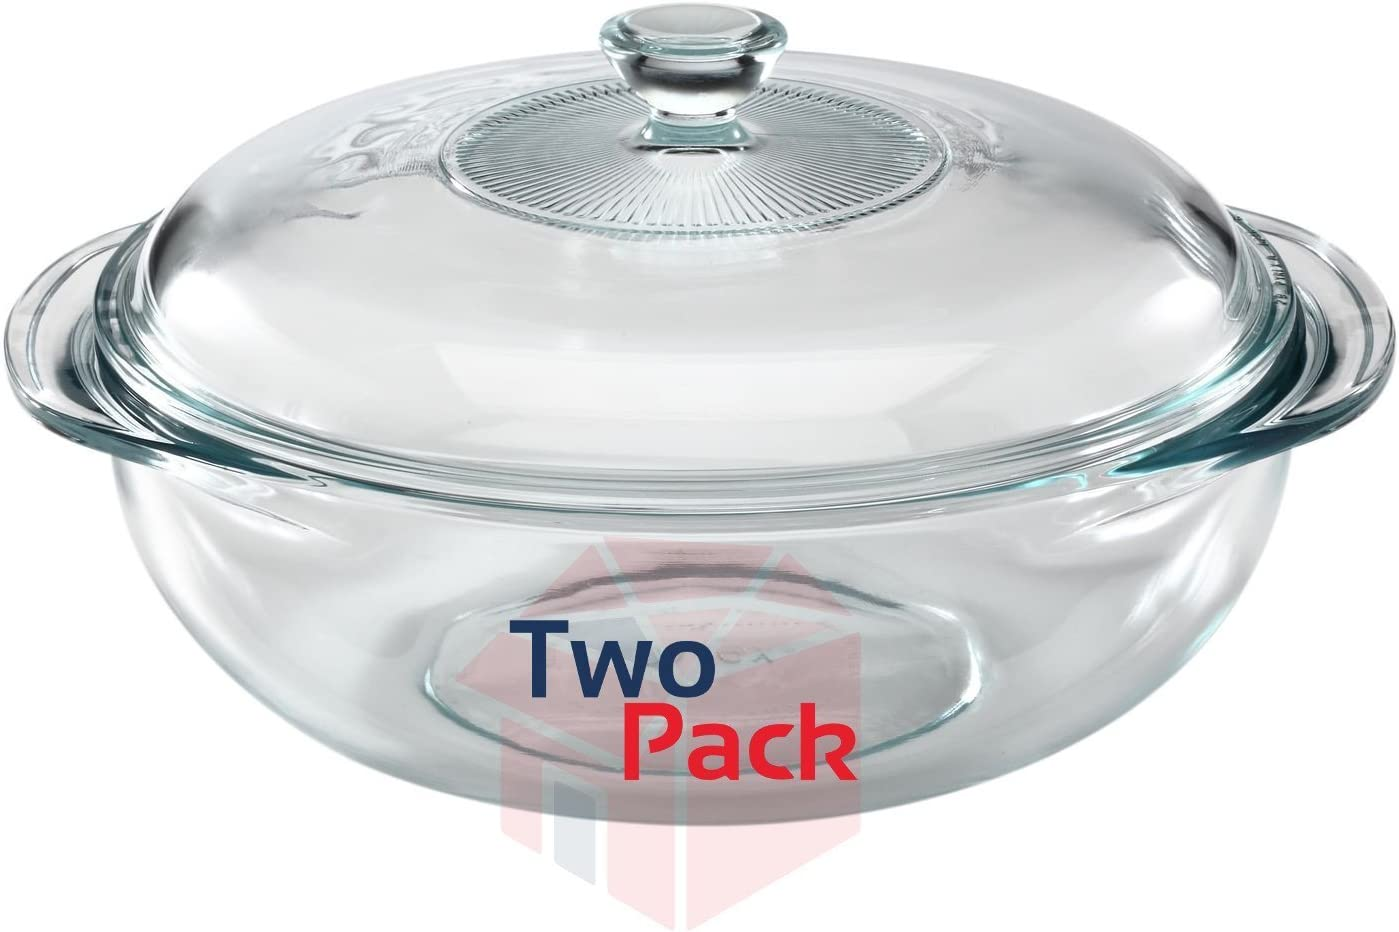 Pyrex 2-Quart Glass Bakeware Dish, (Set Of 2)